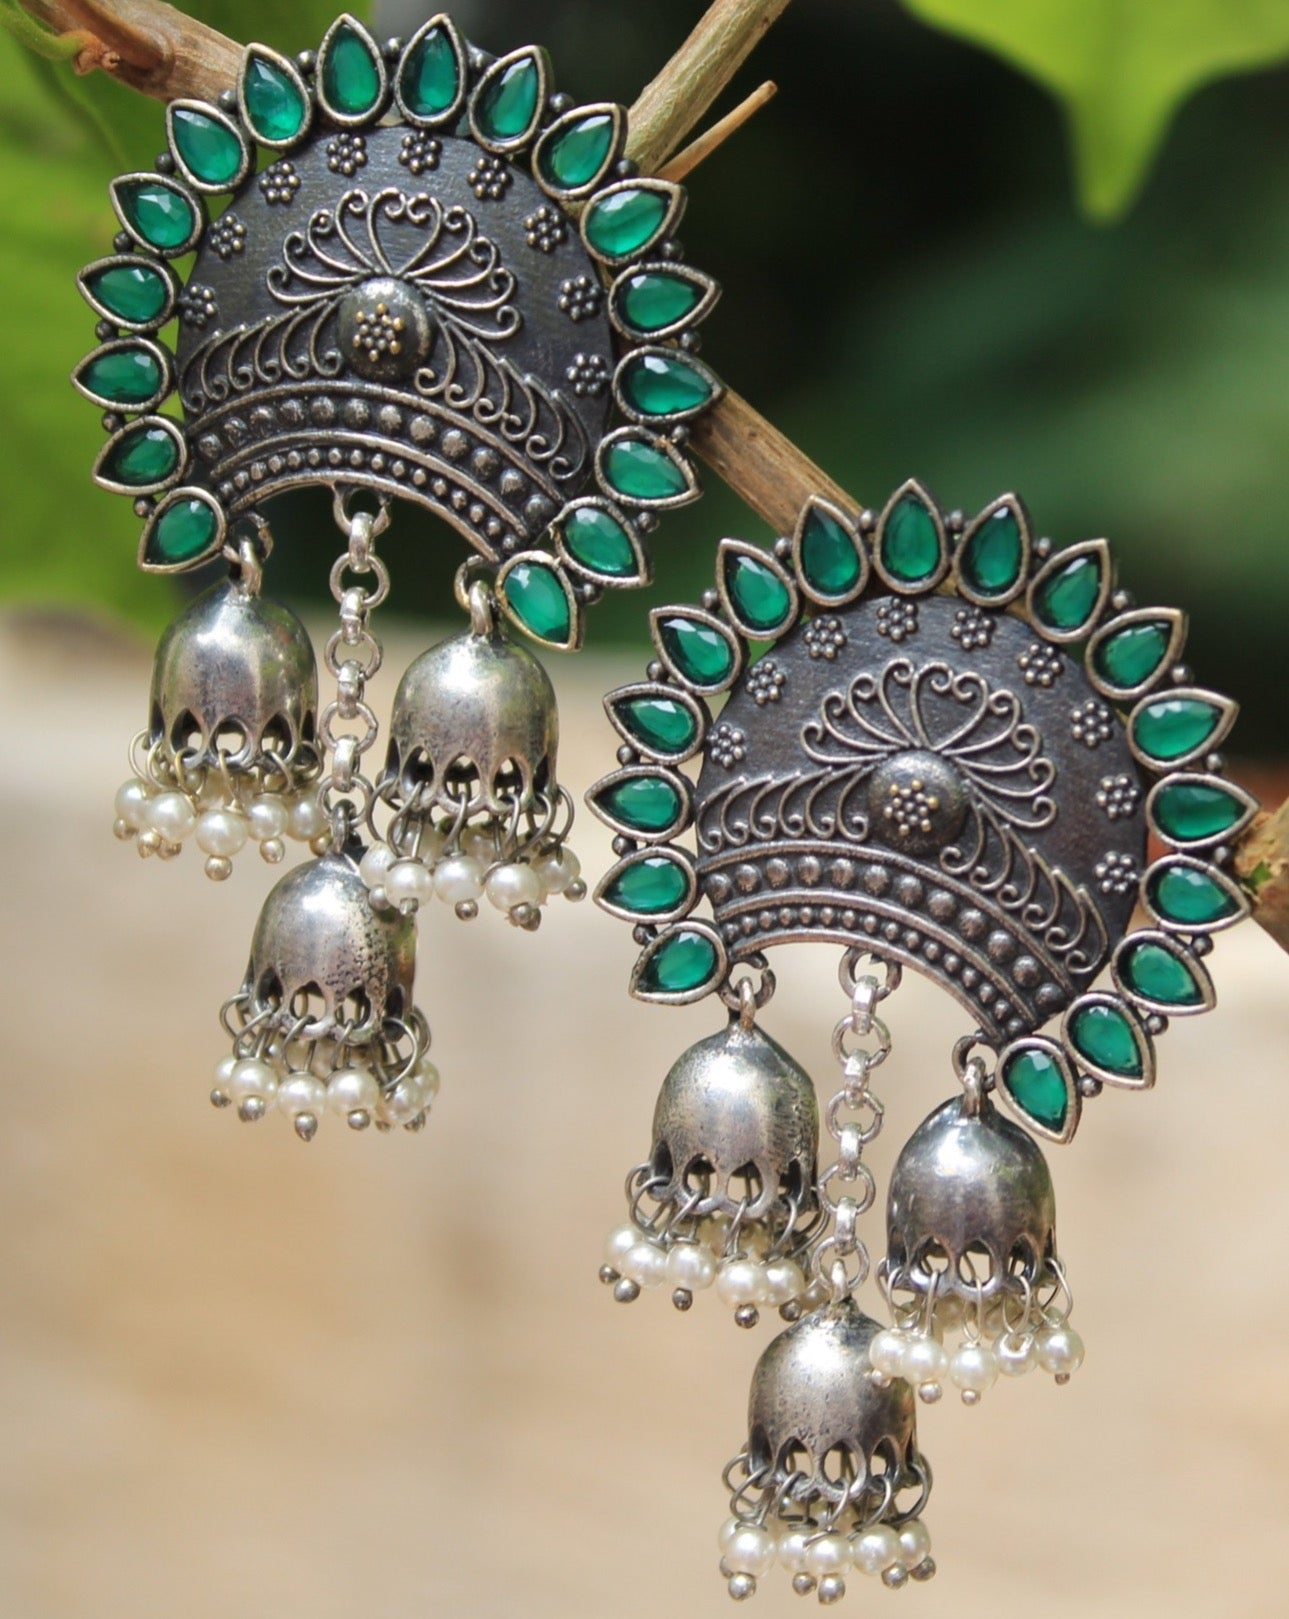 Antique Finish German Silver Earrings with Green Semi-Precious Stones and Jhumkis with Pearls